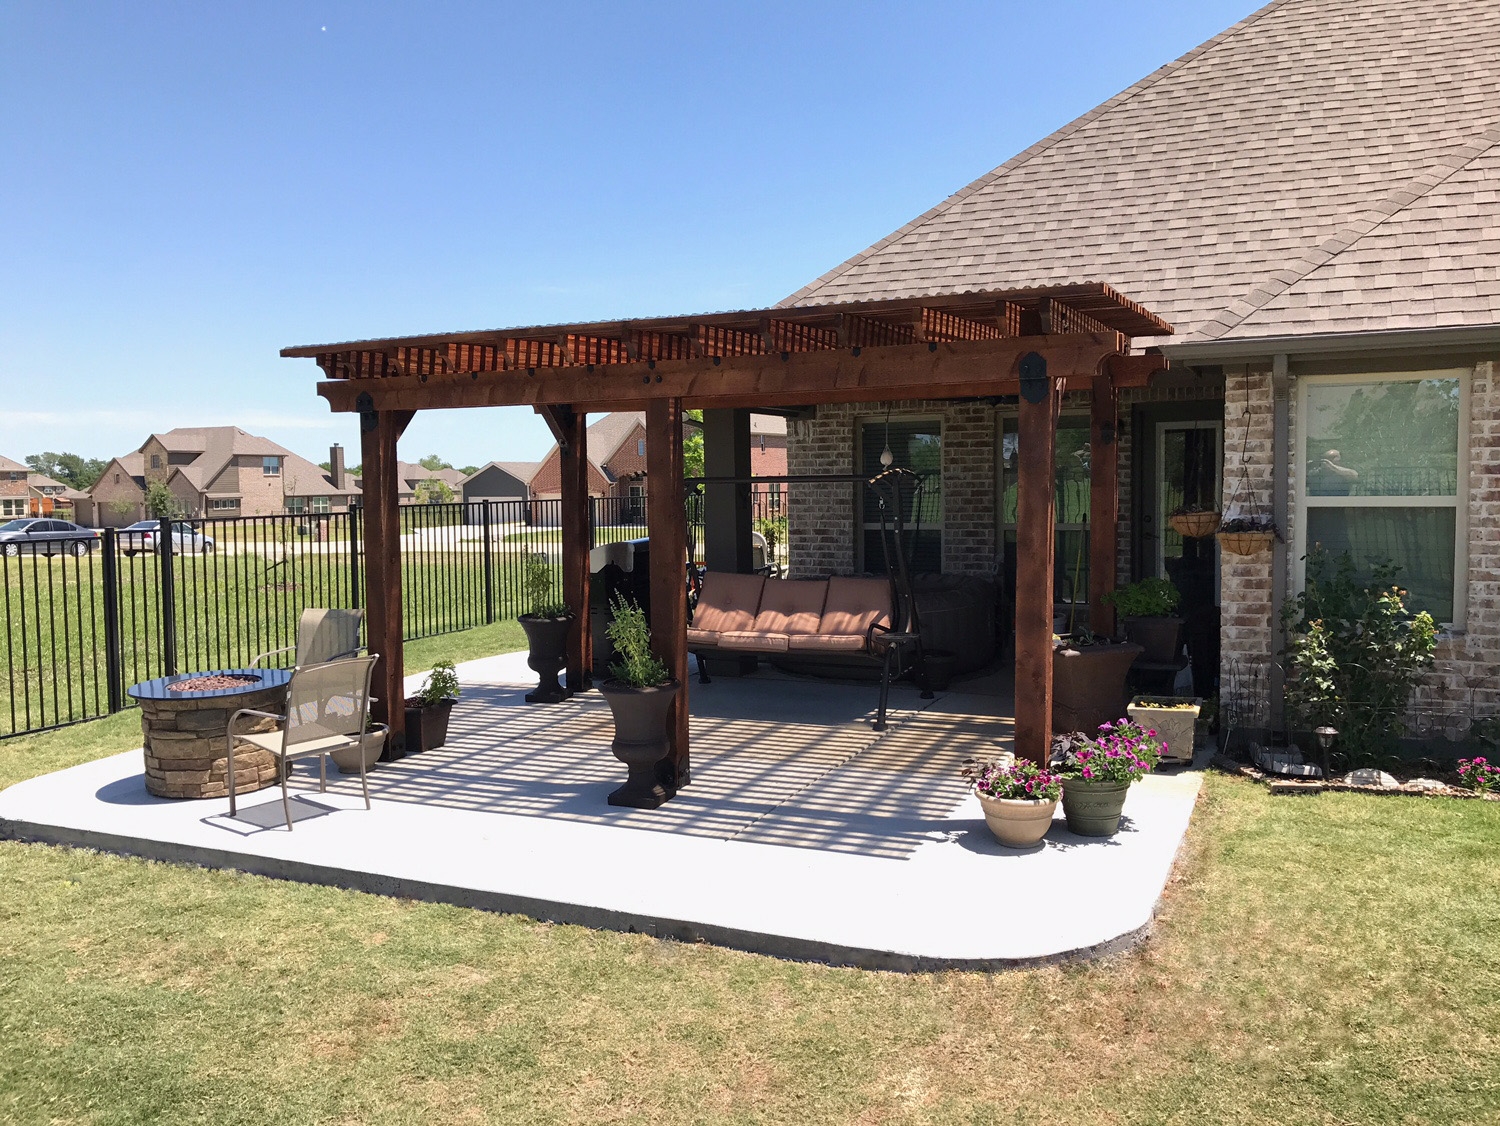 Pergolas | HHH Outdoor Living | United States on Hhh Outdoor Living id=70190